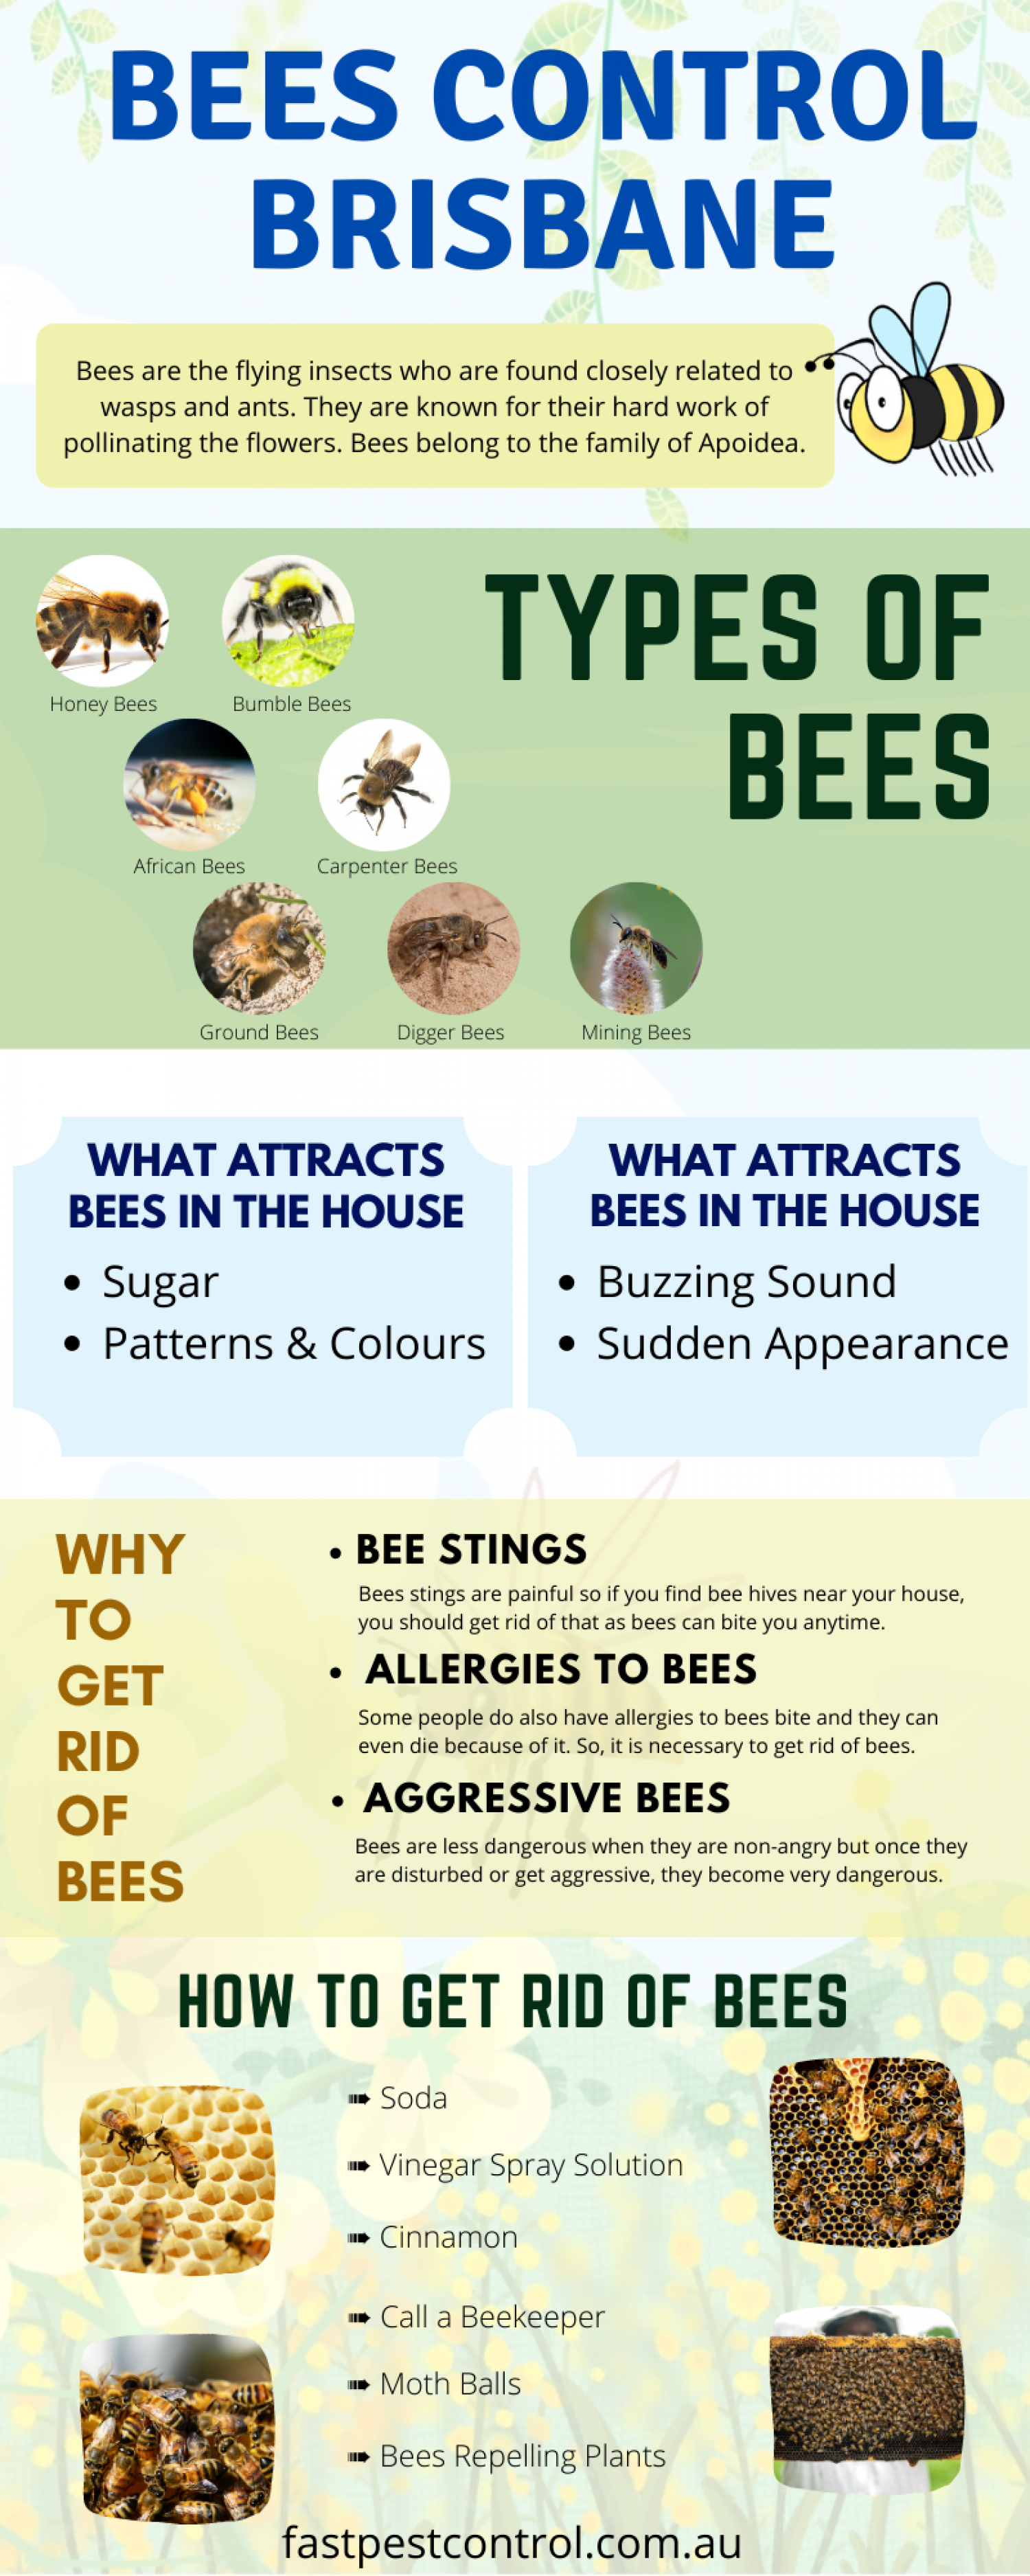 Bees Control Brisbane   Fast Pest Control Bees & Bees Hive Removal Service Infographic